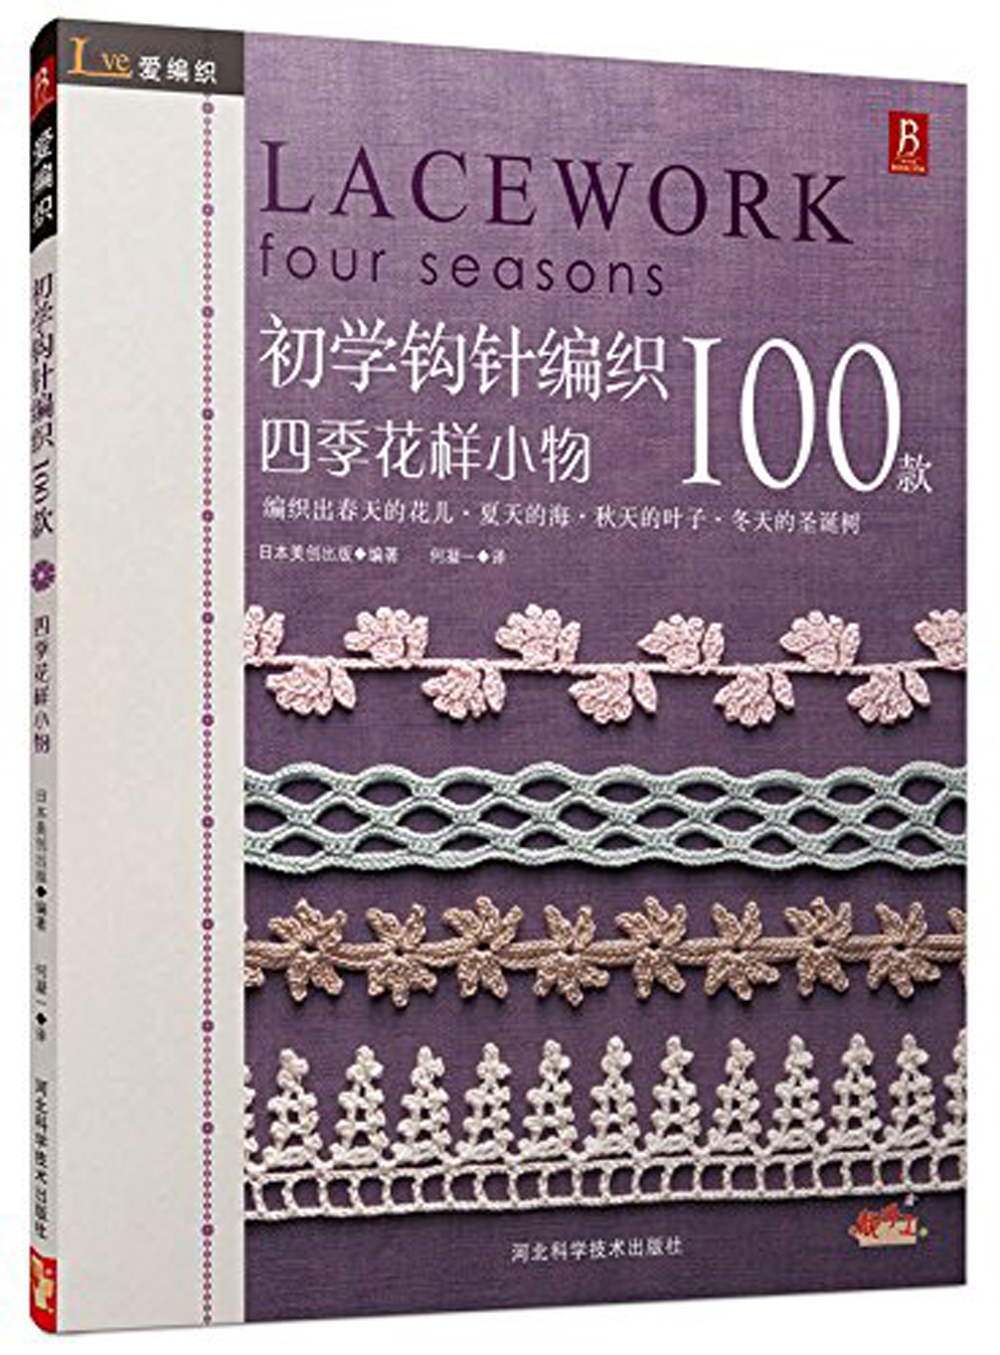 Lacework Four Seasons: Beginner Crochet 100 Patterns Book / A Variety Of Things In The Four Seasons